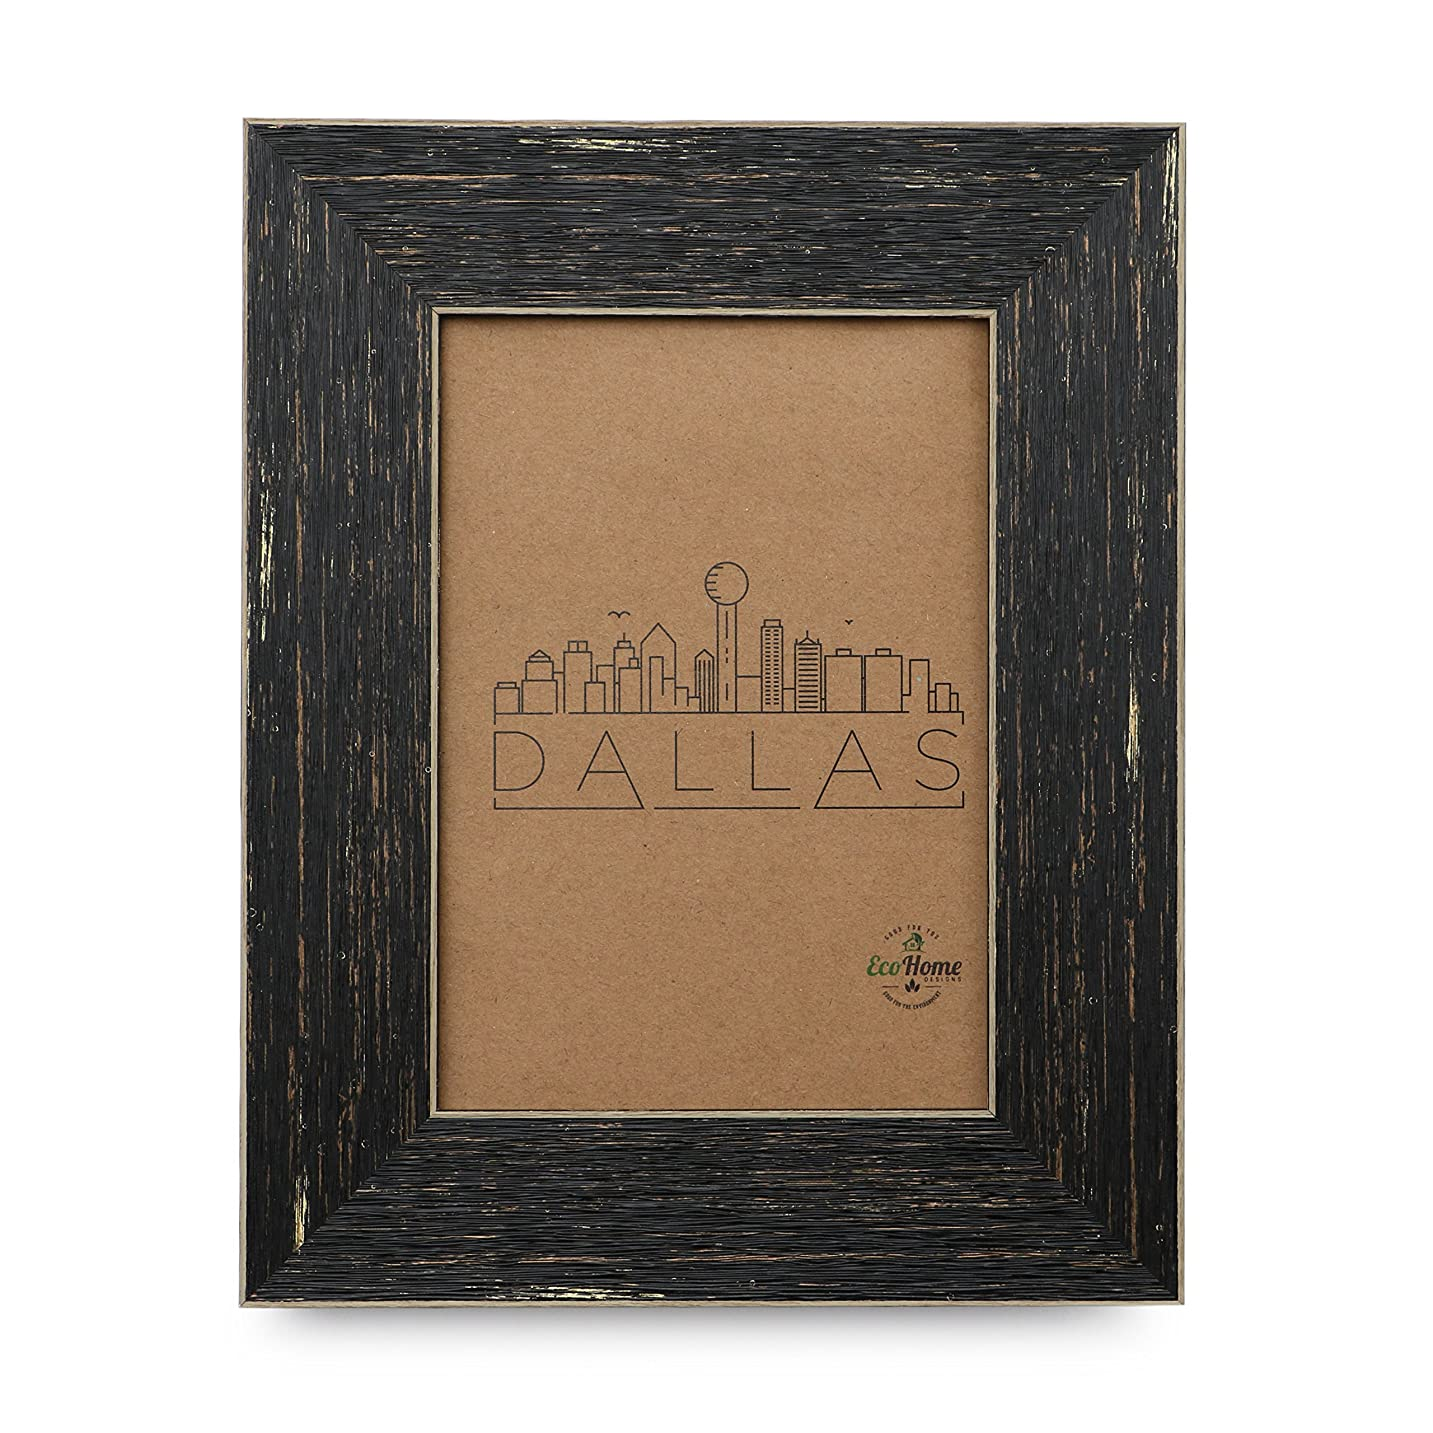 5x7 Picture Frame Barnwood Brown - Dark Reclaimed Wood Finish, Distressed, Mount or Desktop Display, Frames by EcoHome viuinxx077